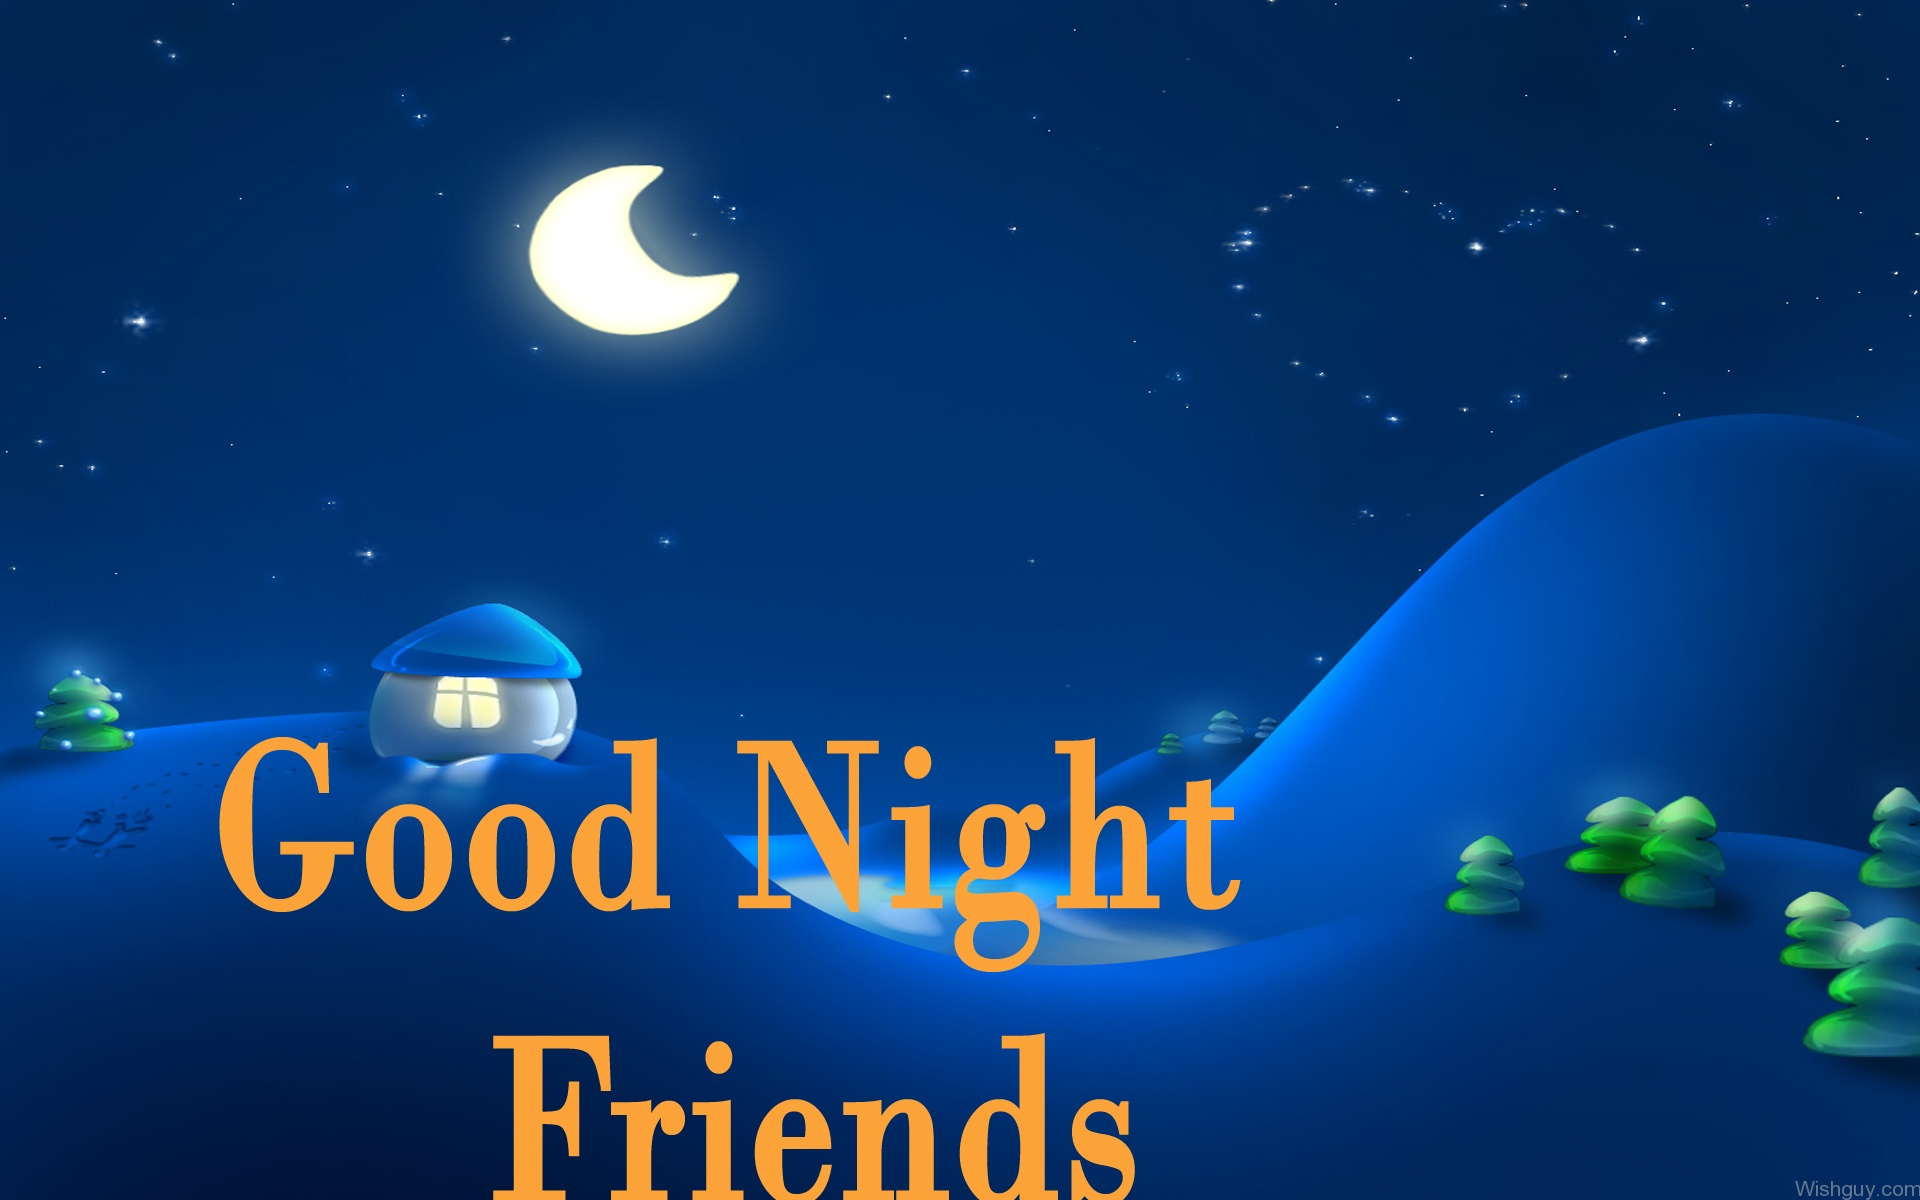 Cute Teddy Bear Live Wallpaper Free Download Good Night Wishes For Friend Wishes Greetings Pictures